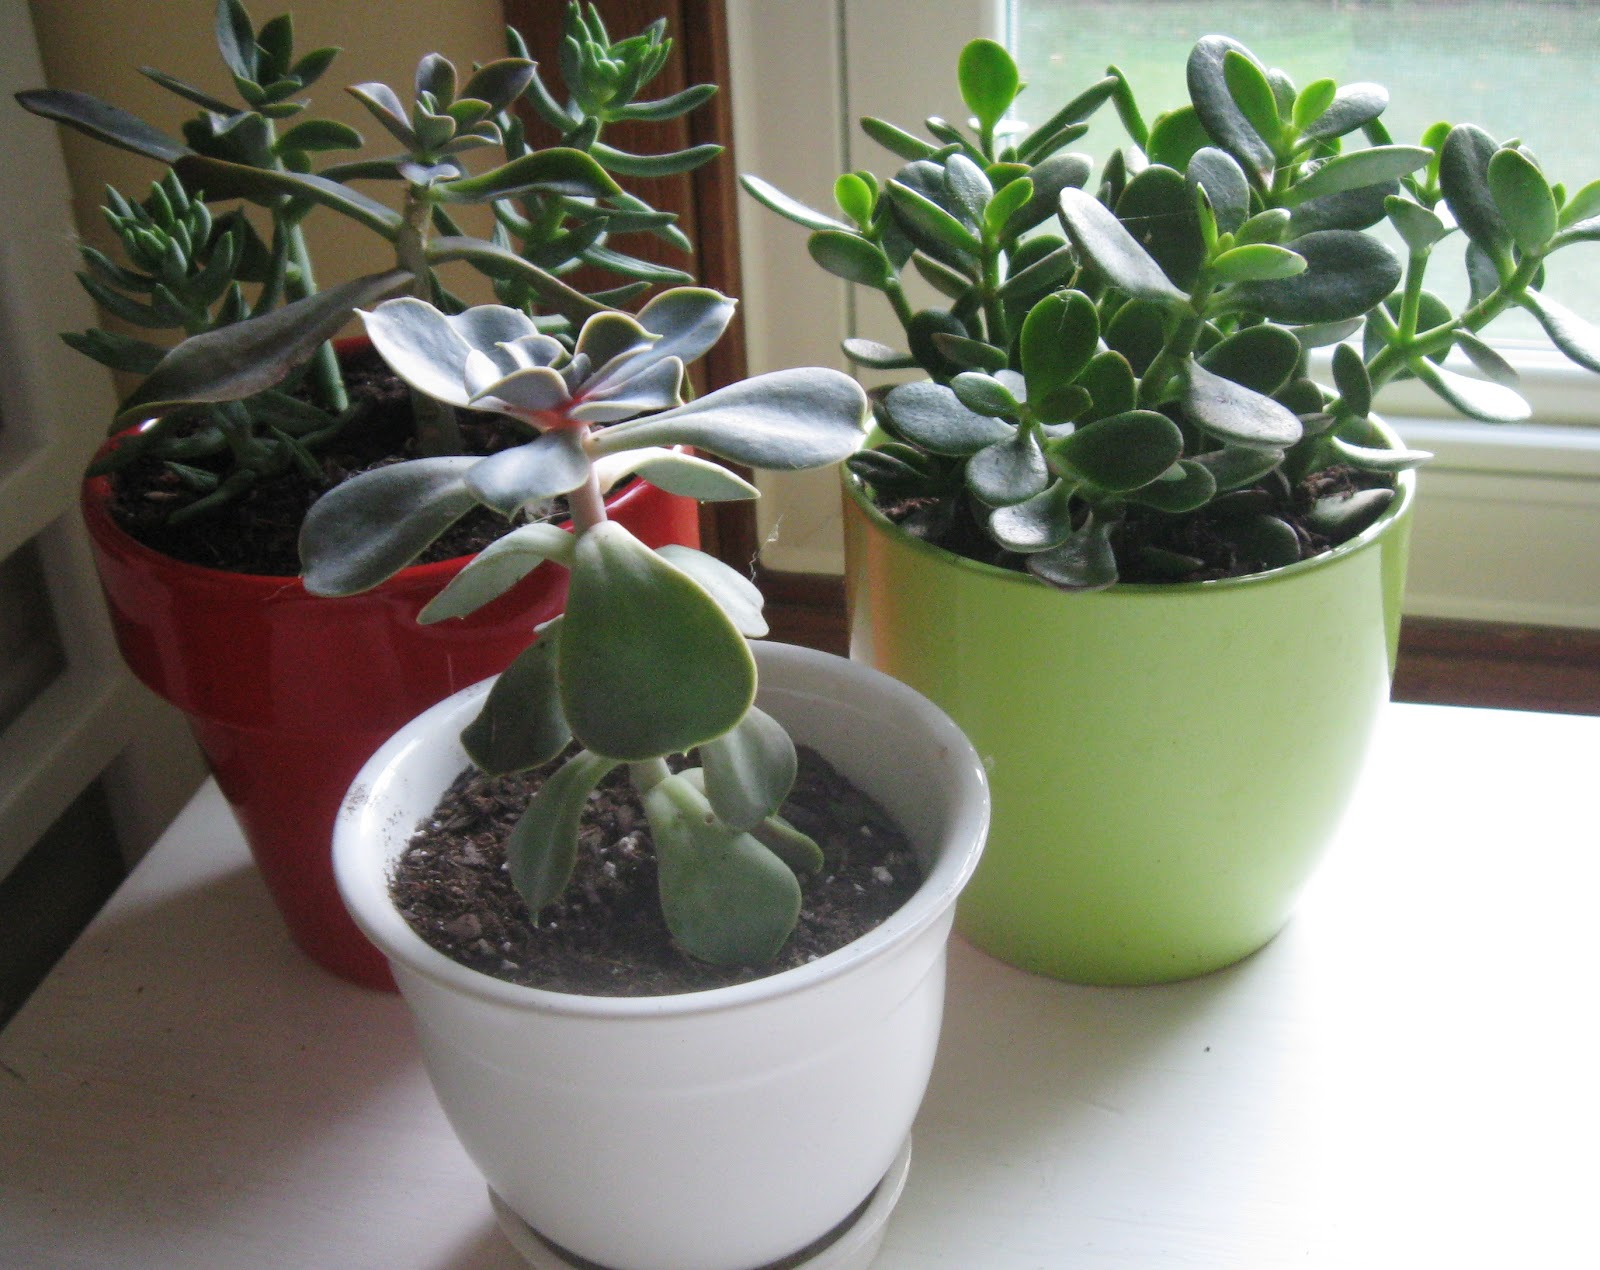 COMFY HOUSE: moving outdoor plants inside